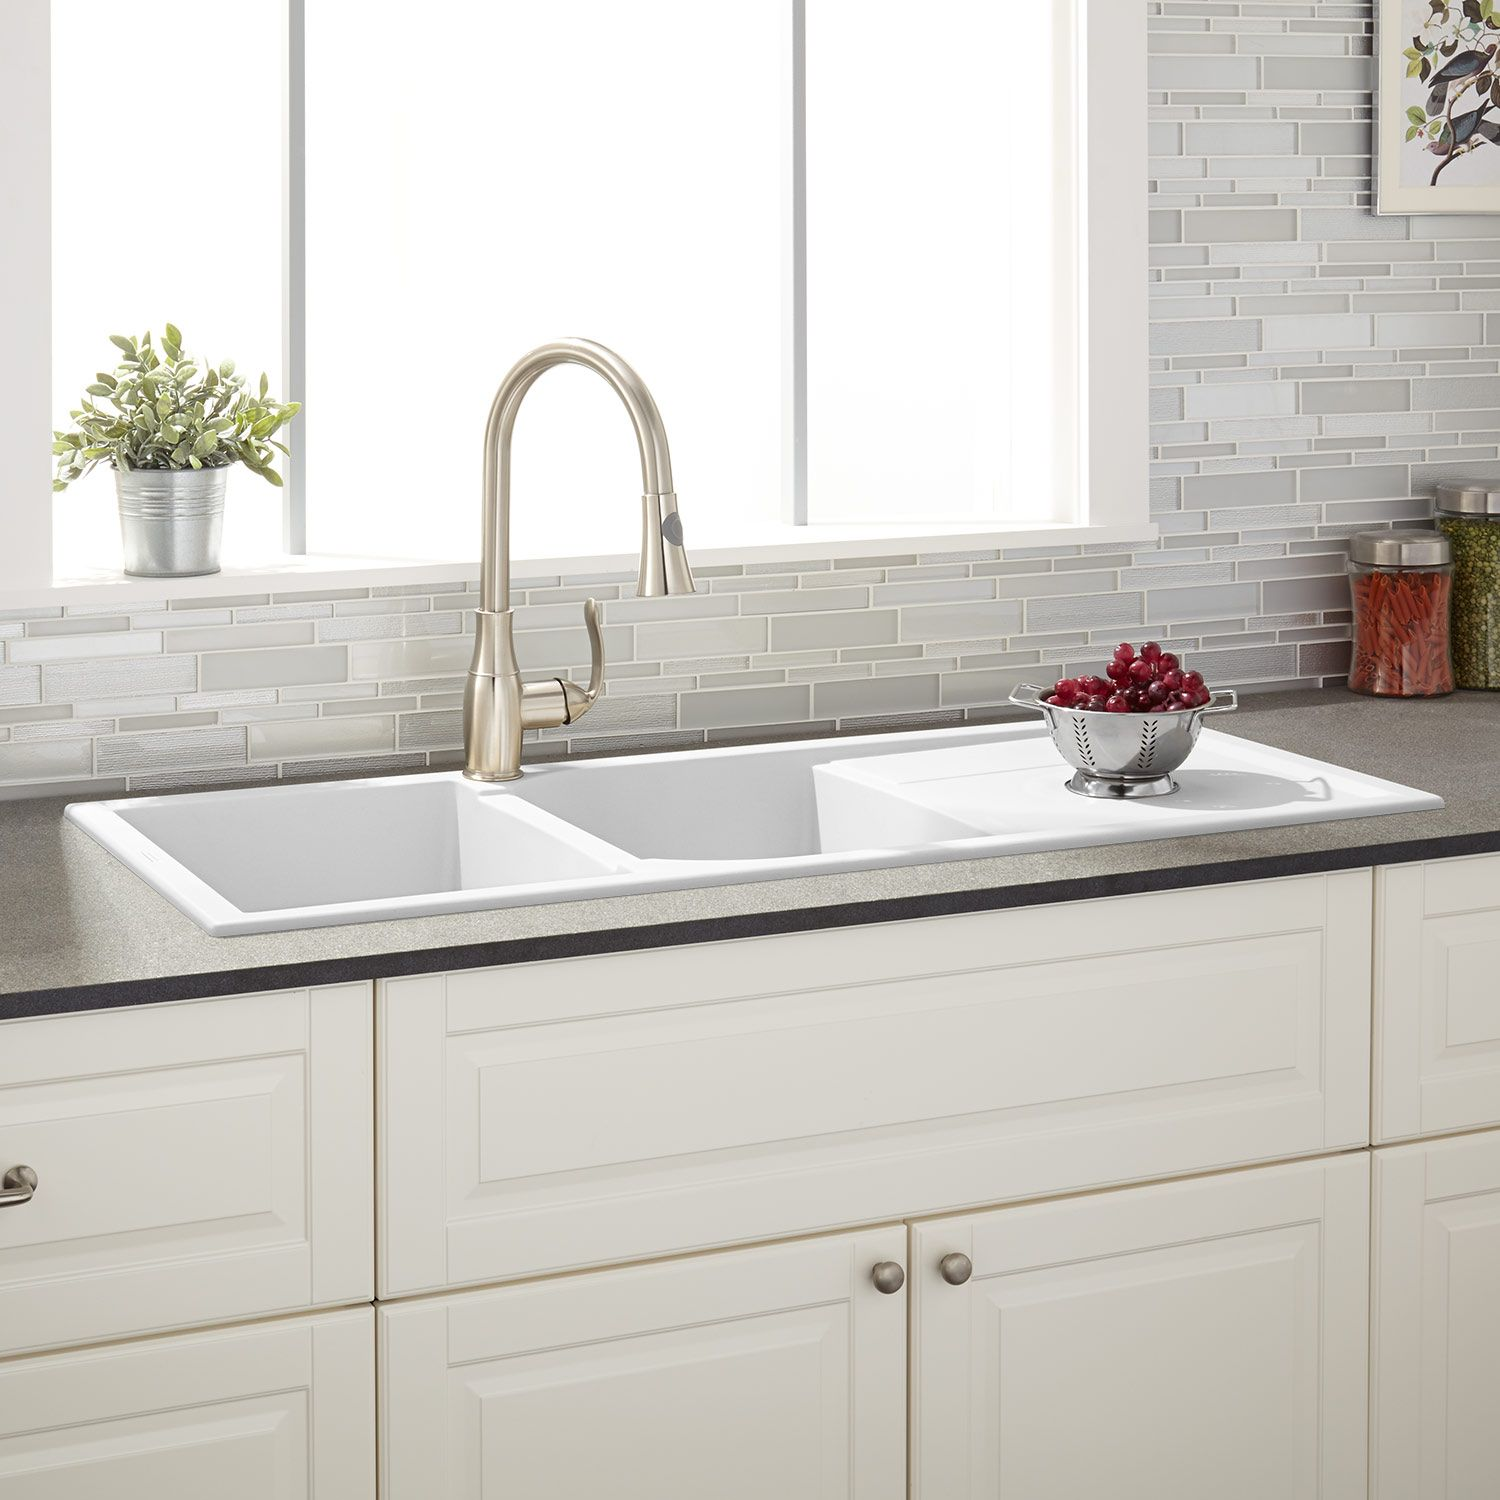 46 owensboro double bowl drop in granite composite sink with drain rh pinterest co uk